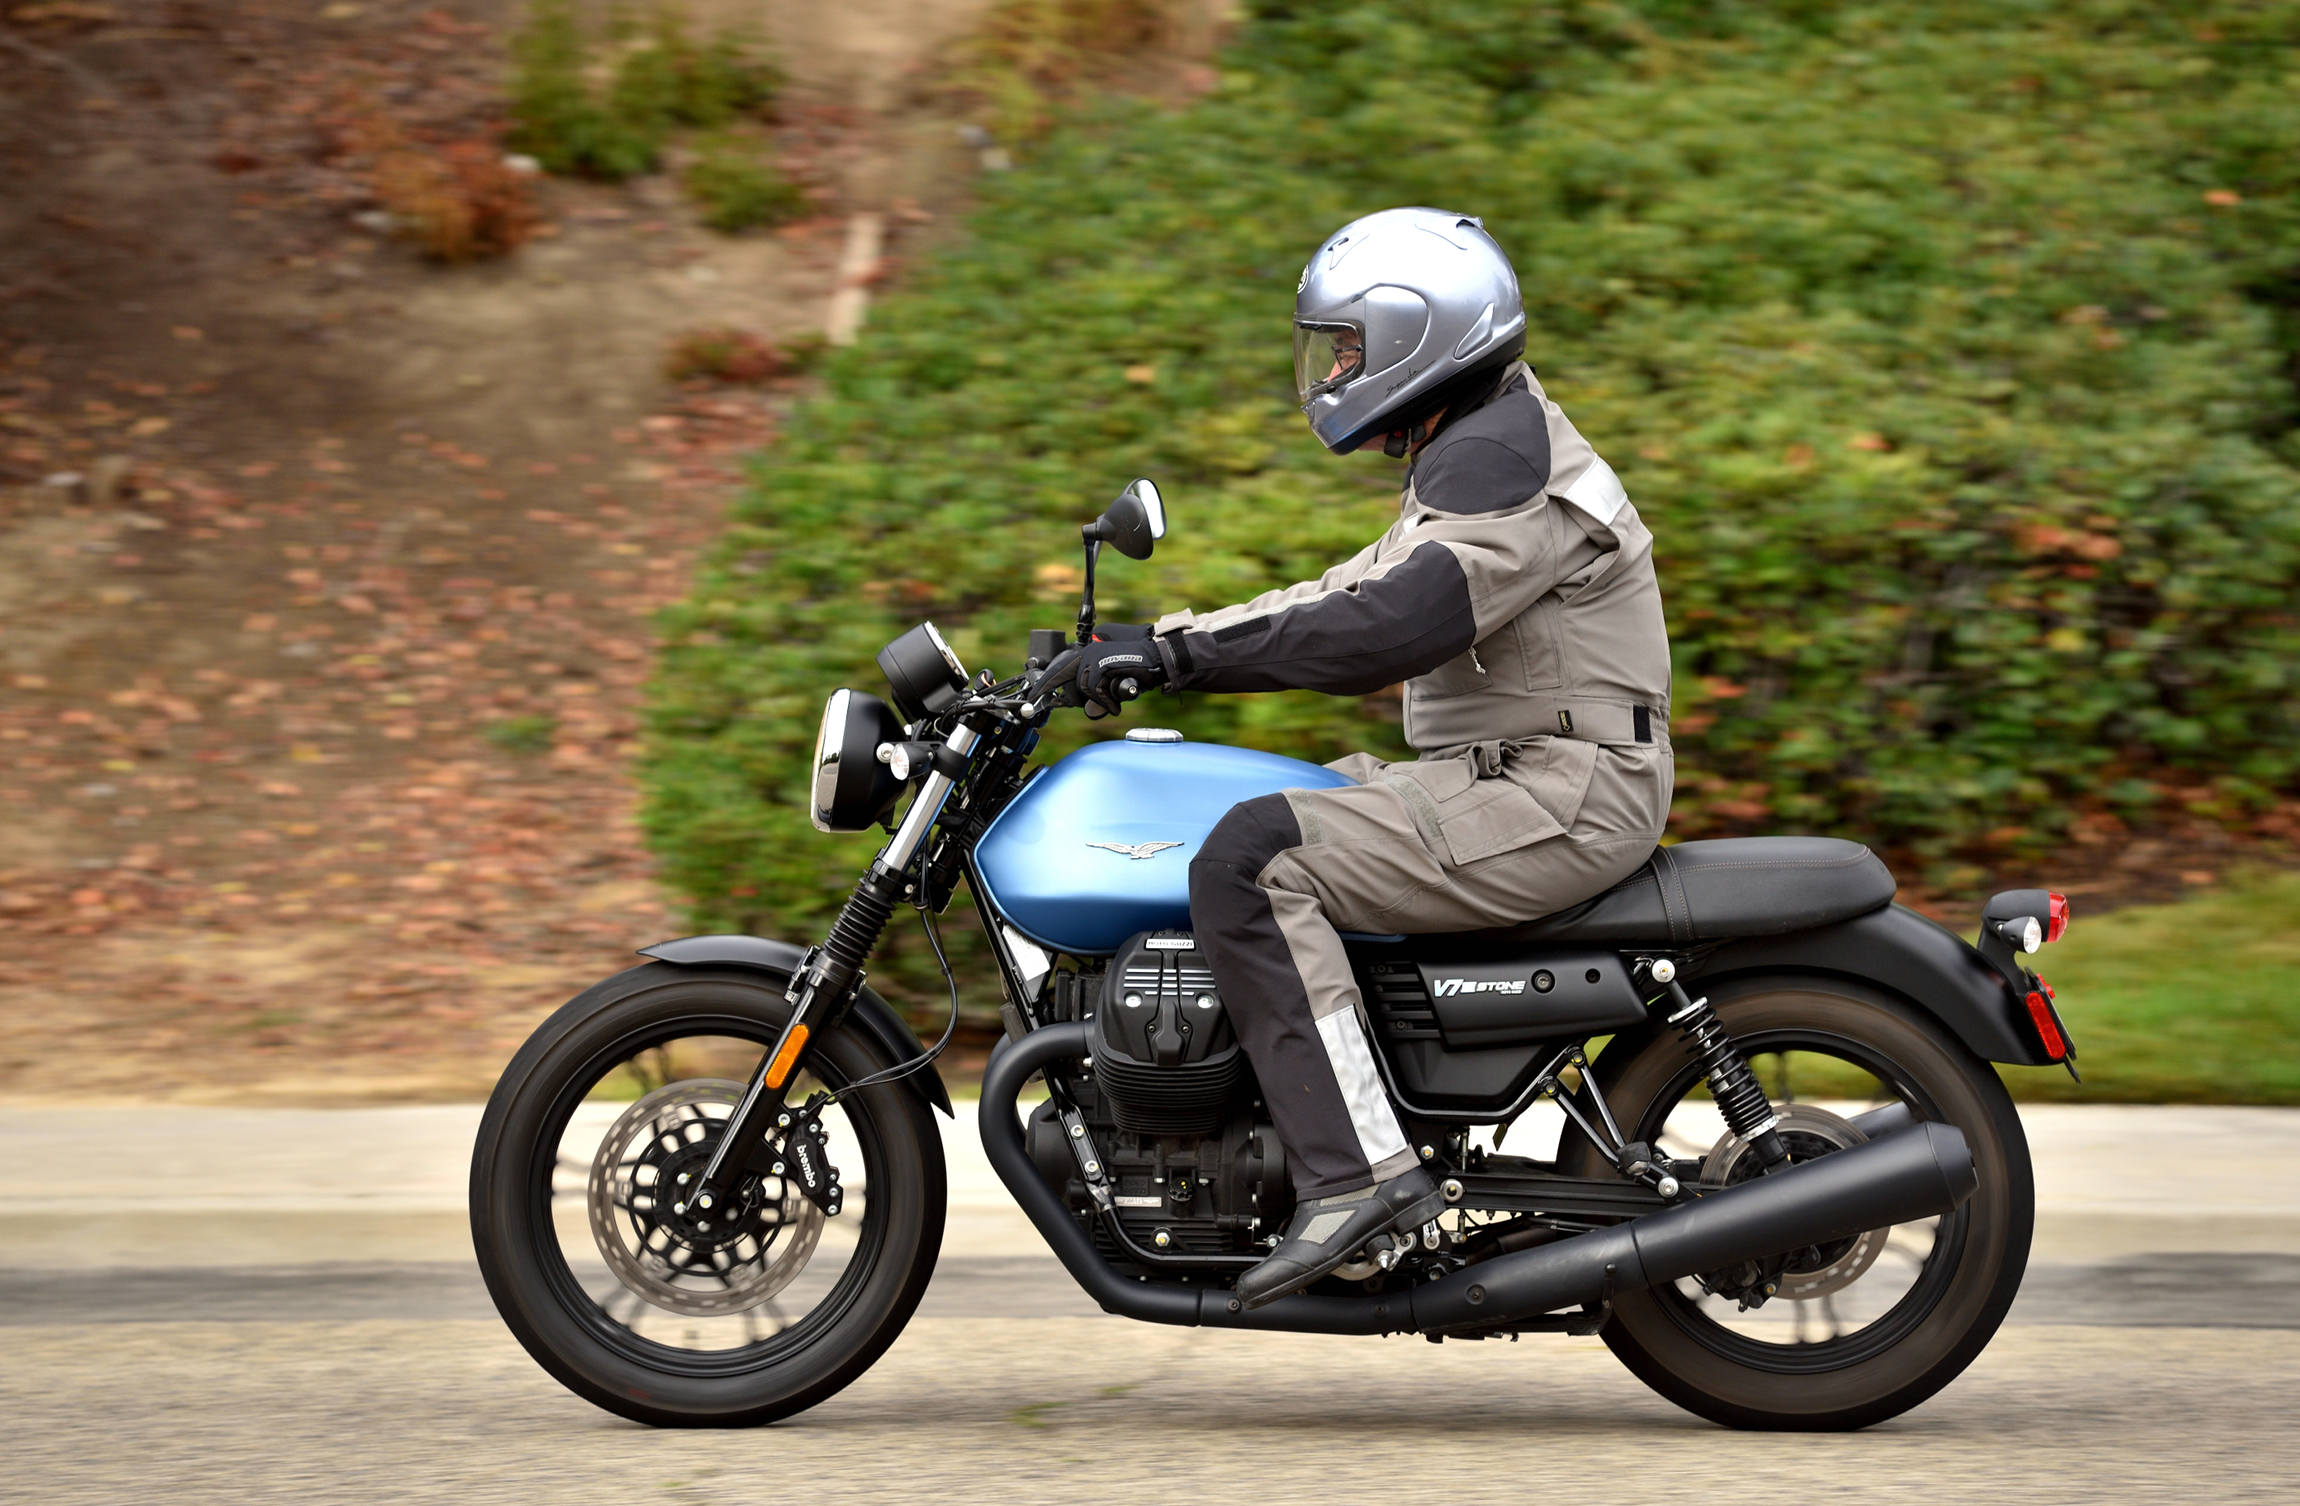 2017 moto guzzi v7 iii stone md ride review motorcycle news editorials. Black Bedroom Furniture Sets. Home Design Ideas